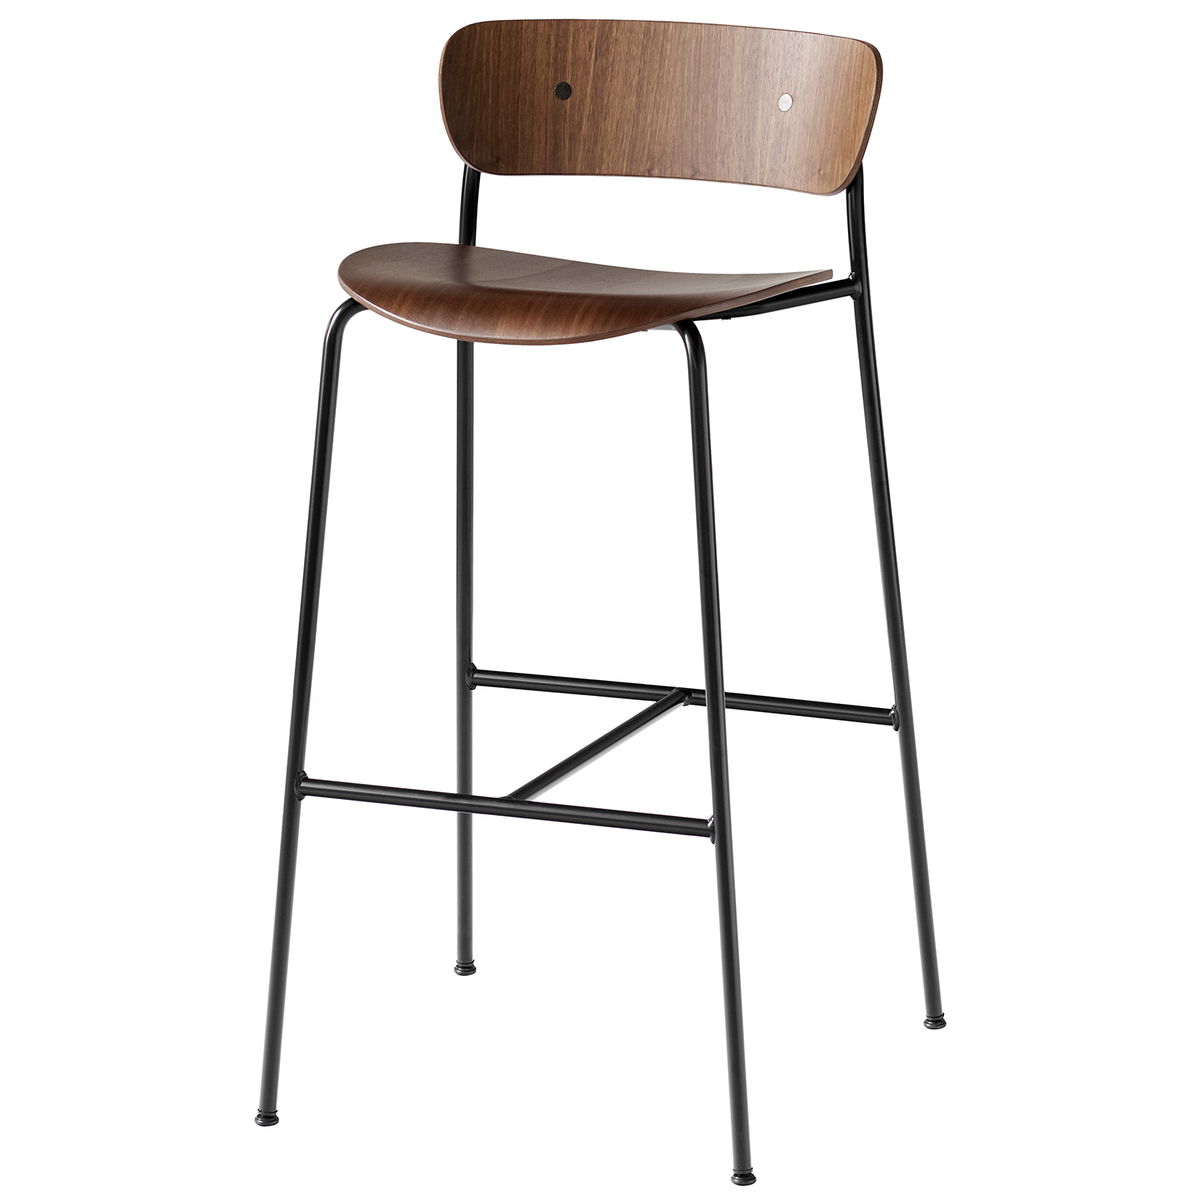 &Tradition Pavilion AV7 / AV9 bar stool, lacquered walnut from &Tradition